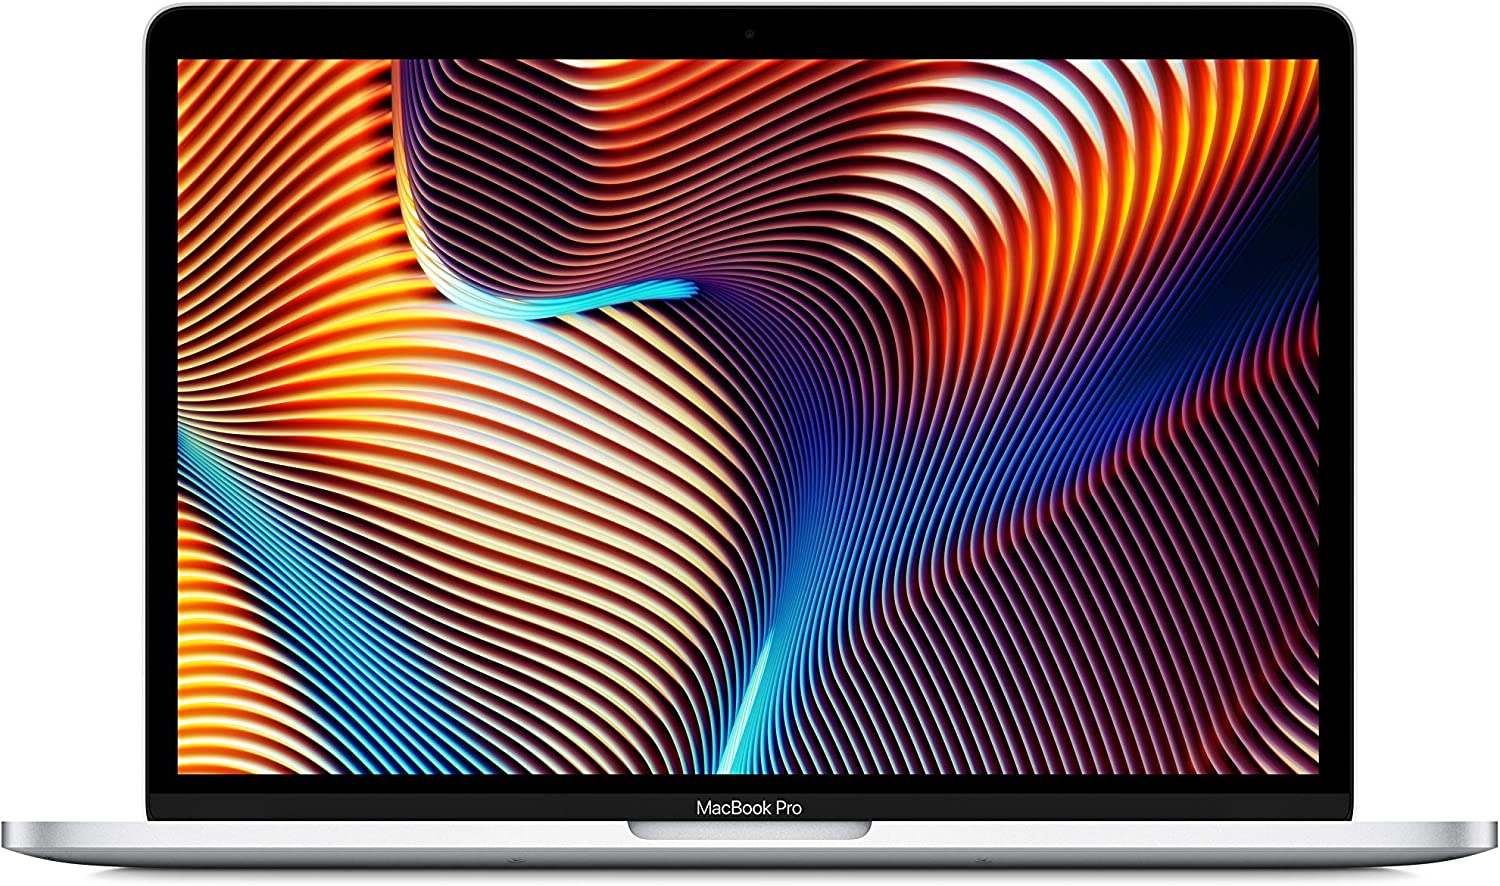 Apple MacBook Pro 2019 Model (5V9A2LL/A) 13.3-inch, 512GB Storage - Silver (Renewed)